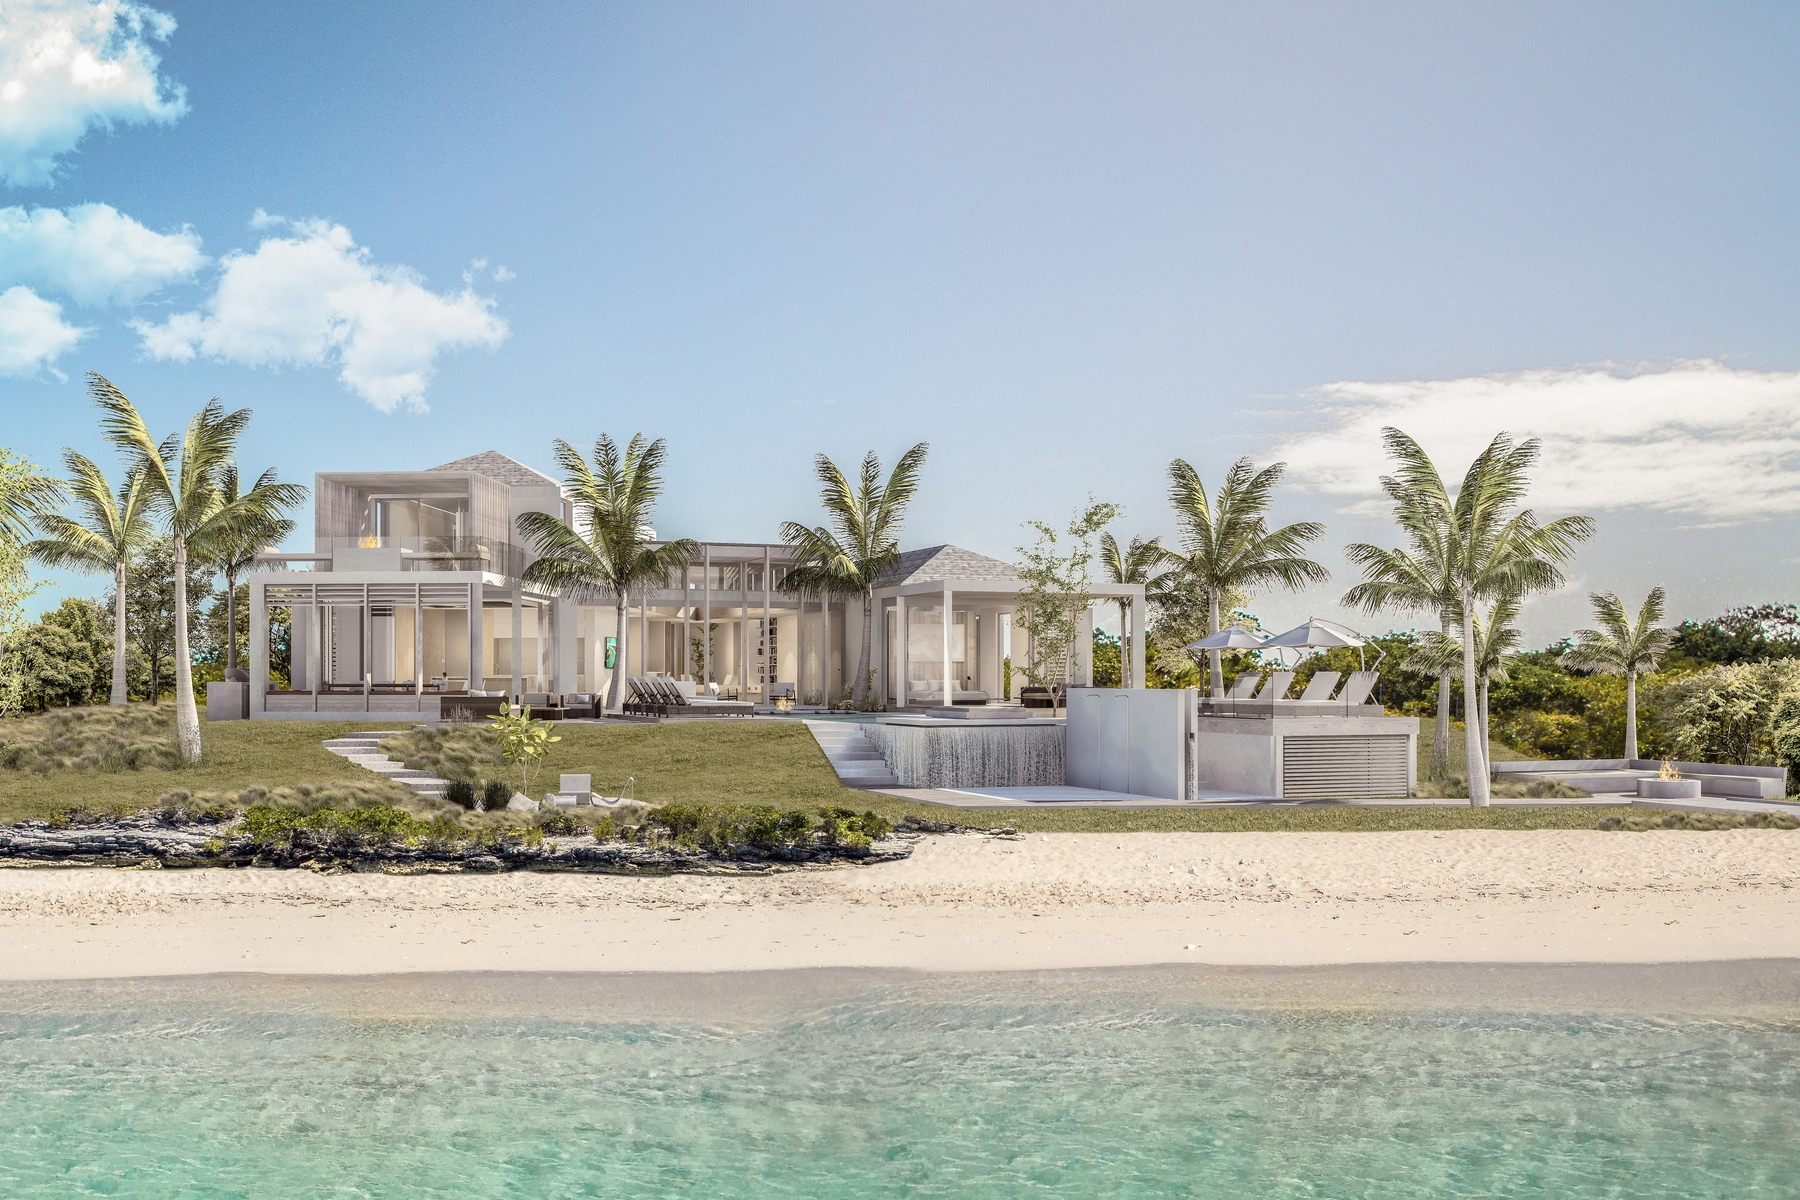 Single Family Home for Sale at Panorama Y House - Beachfront Lot 2 Leeward, Turks And Caicos Islands